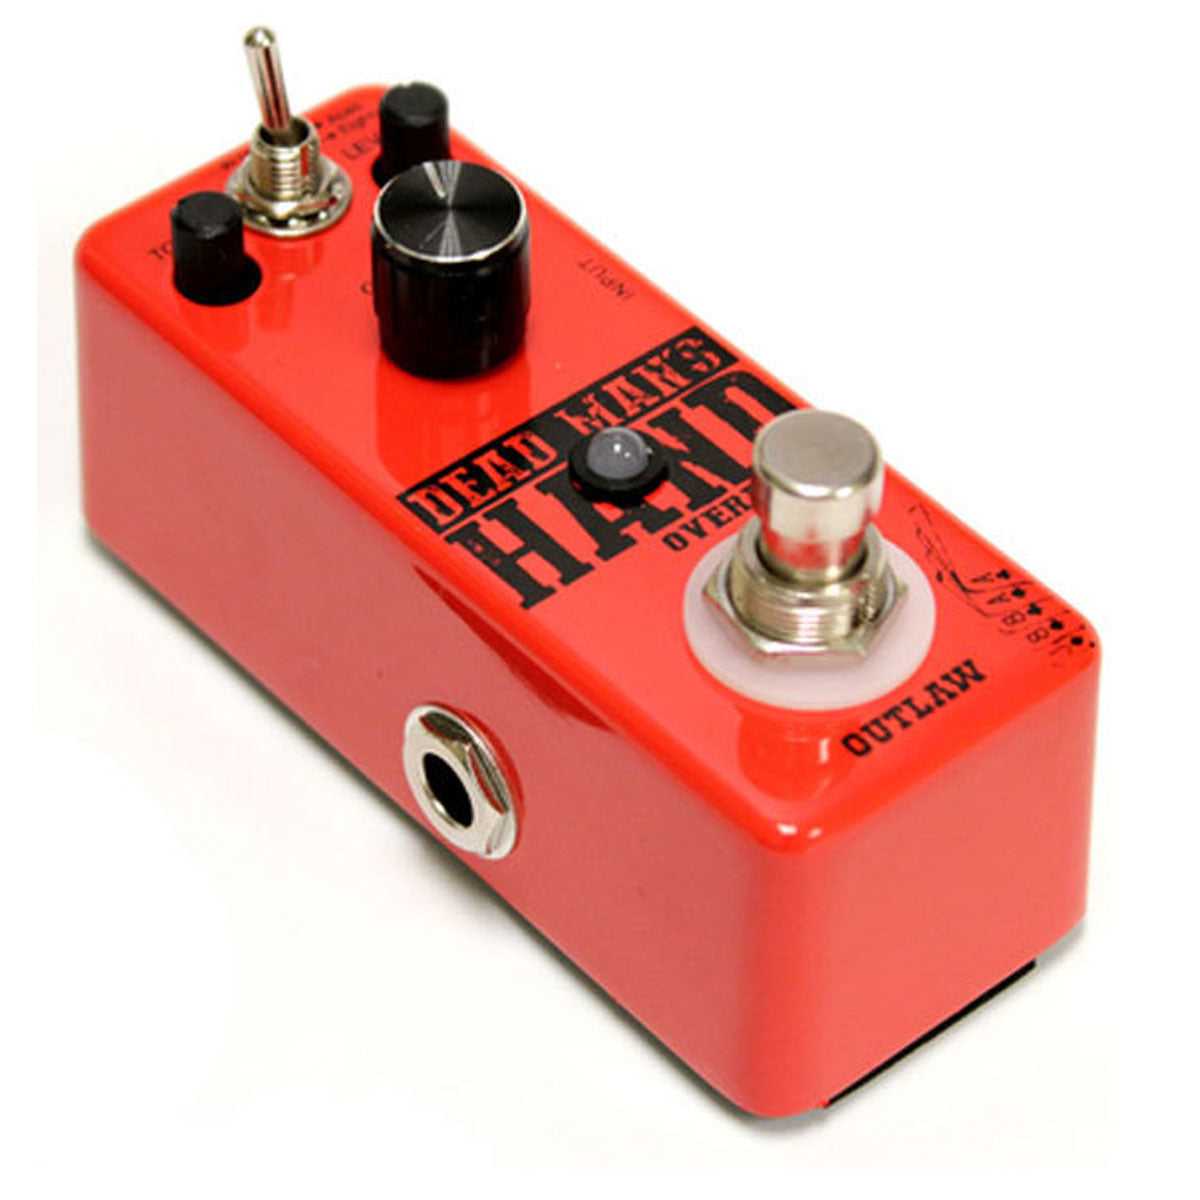 Outlaw Effects Dead Man's Hand Dual Mode Overdrive Pedal